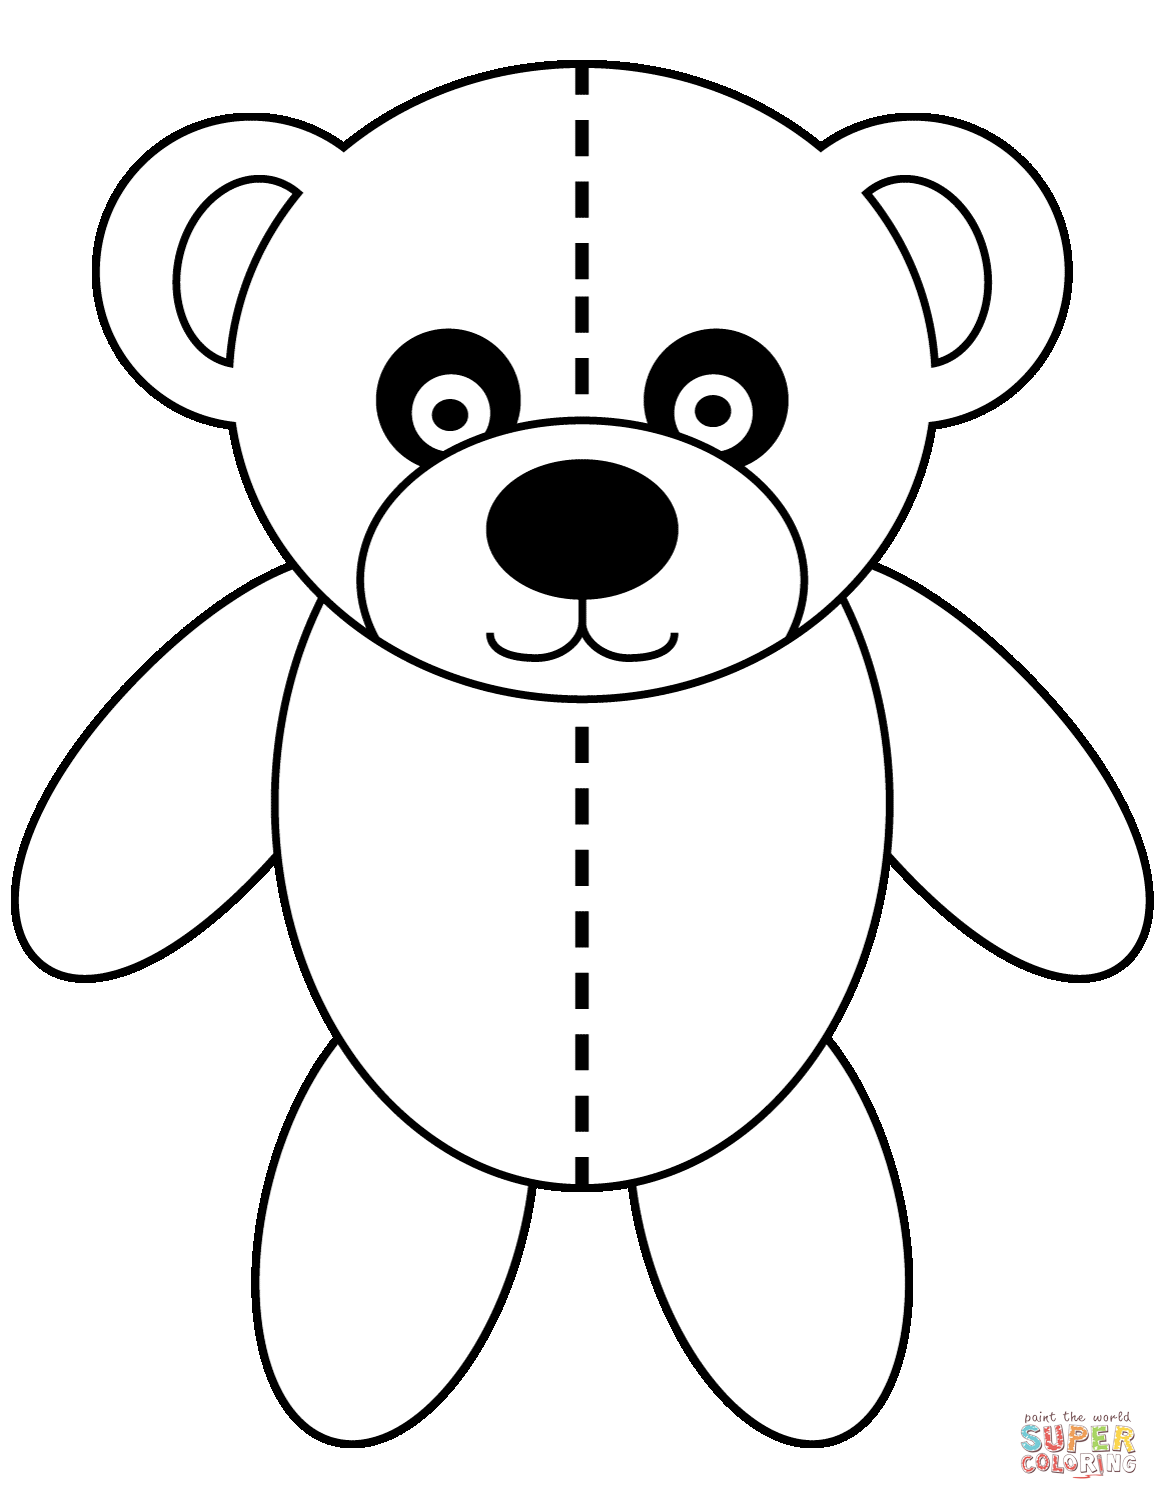 pudsey bear colouring pages free awesome free printable pudsey bear cartoon coloring pages bear free pudsey colouring pages